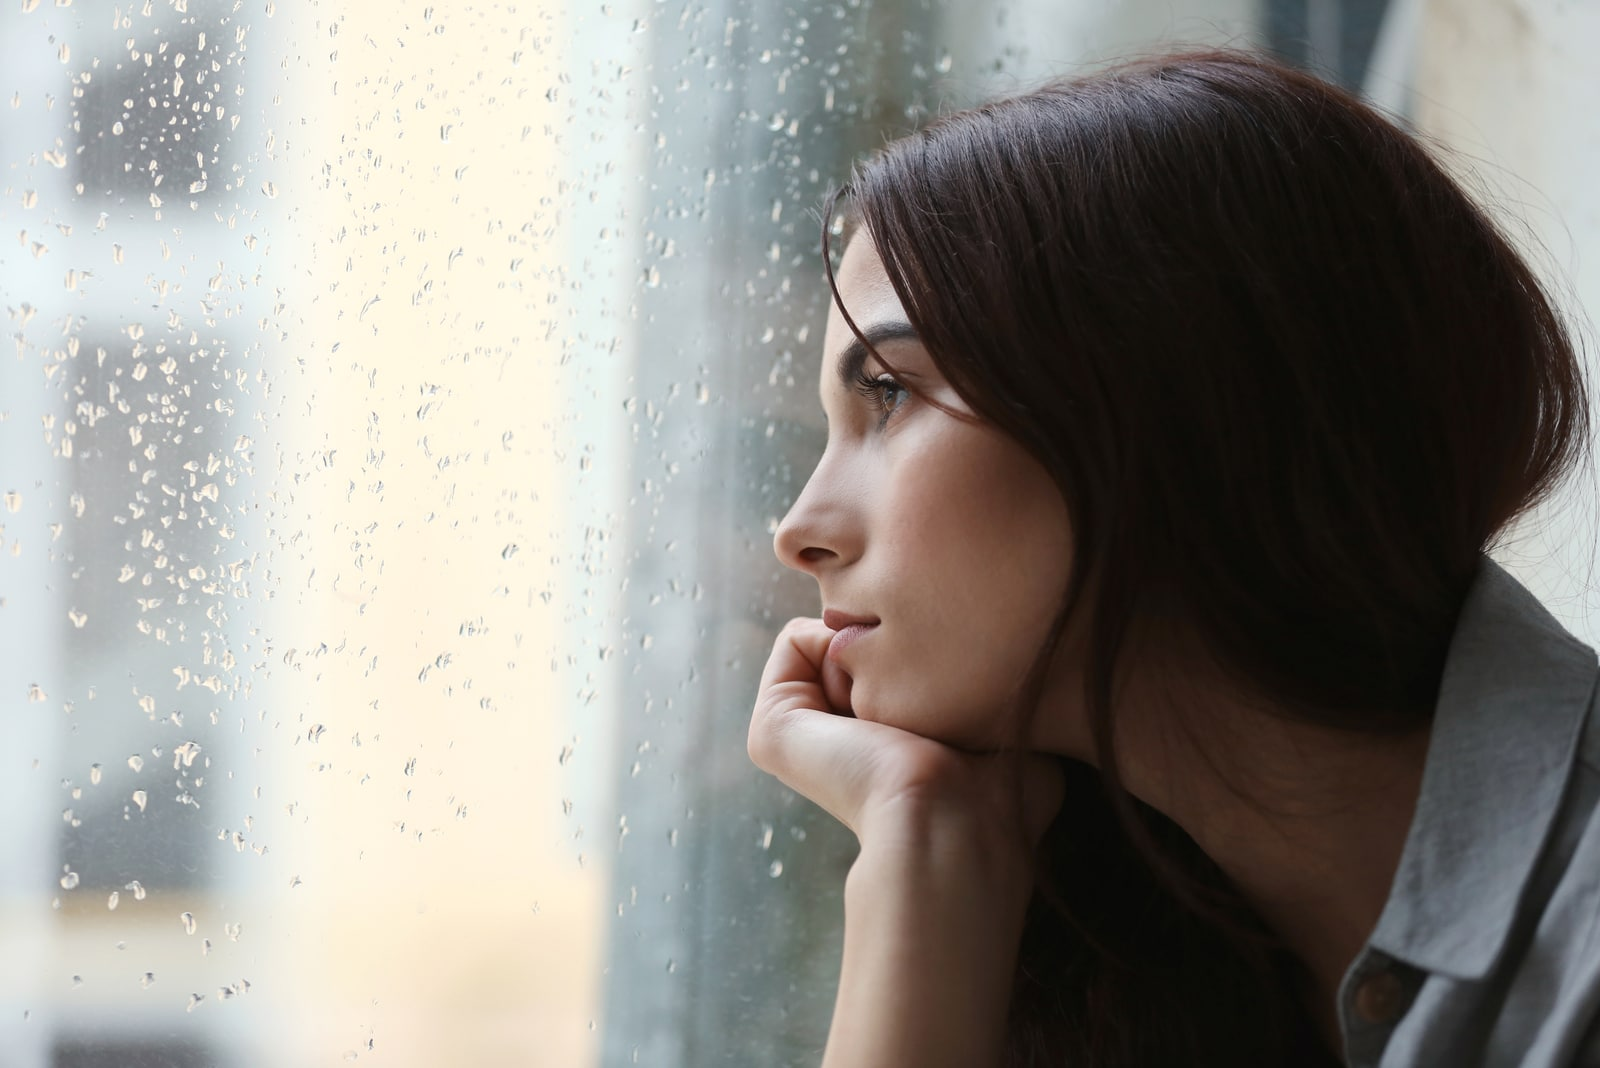 sad woman looking through rainy window